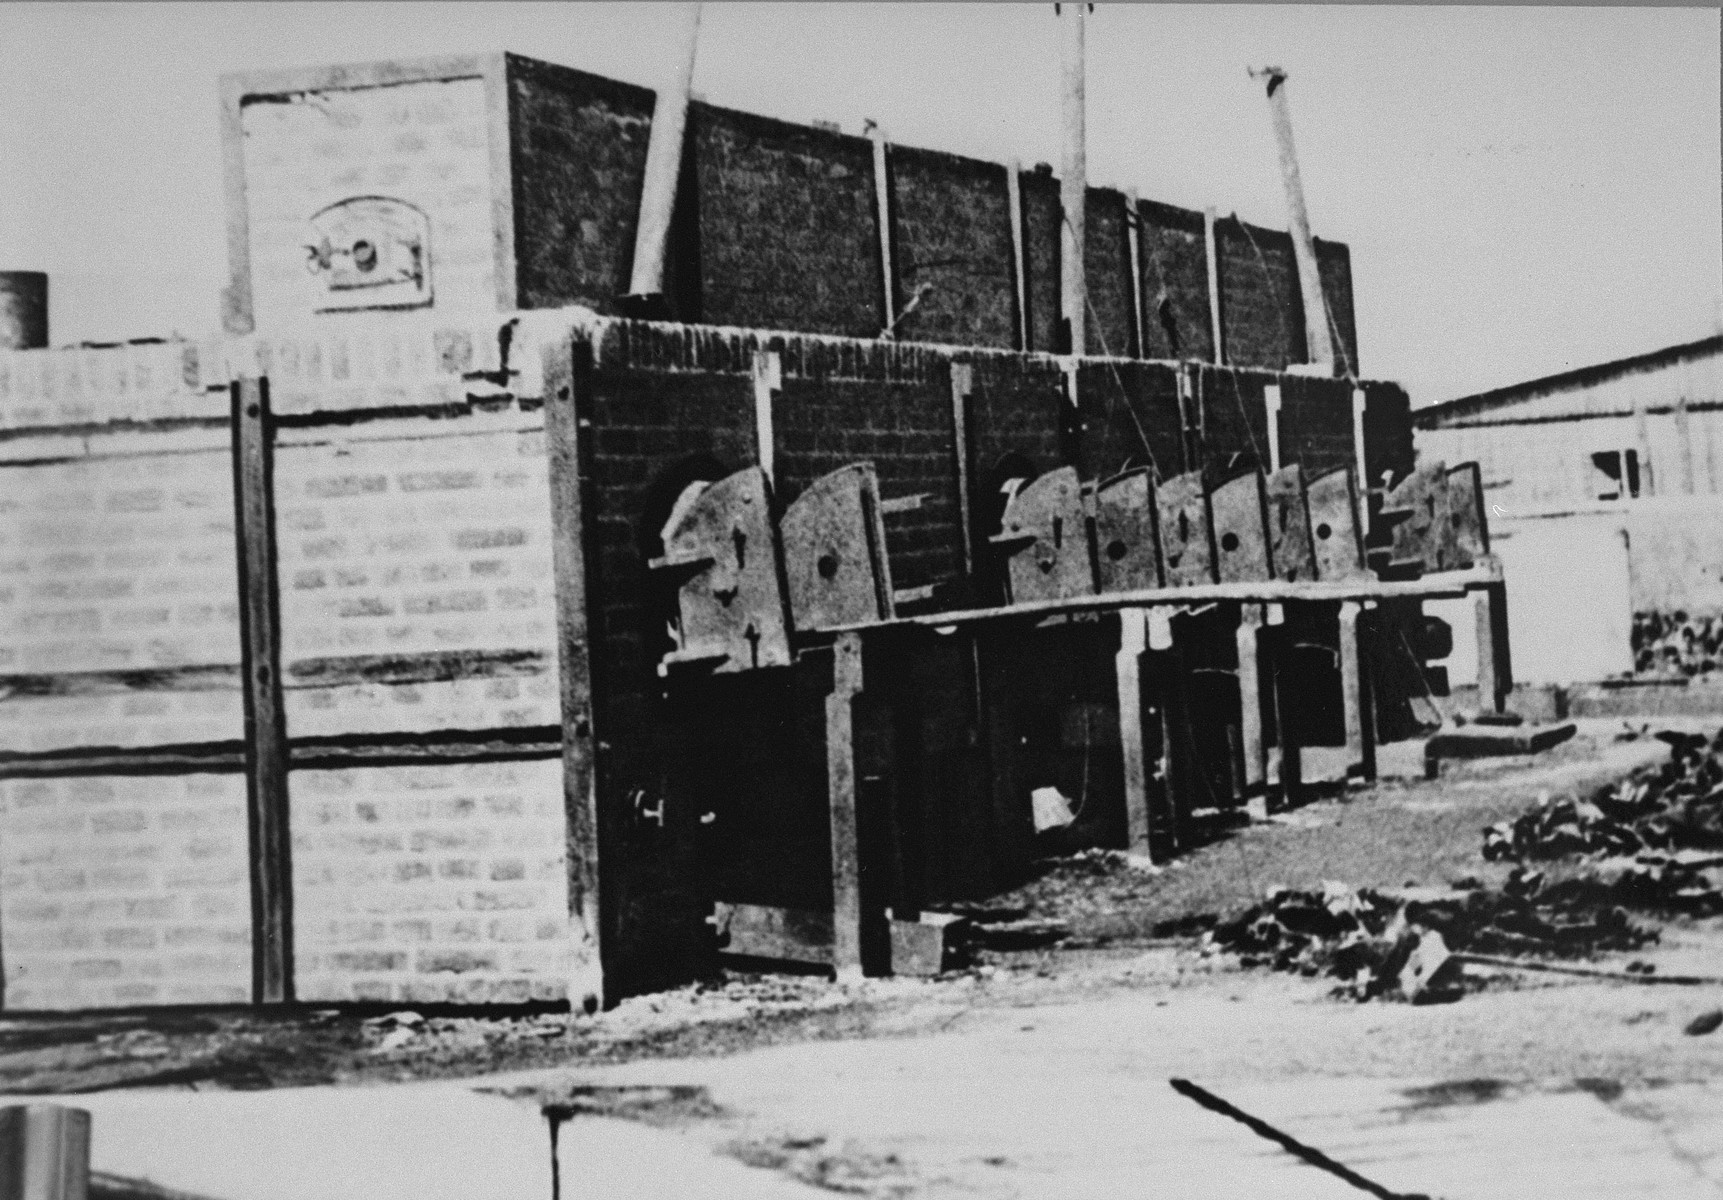 View of crematorium ovens at the Majdanek concentration camp after the liberation.